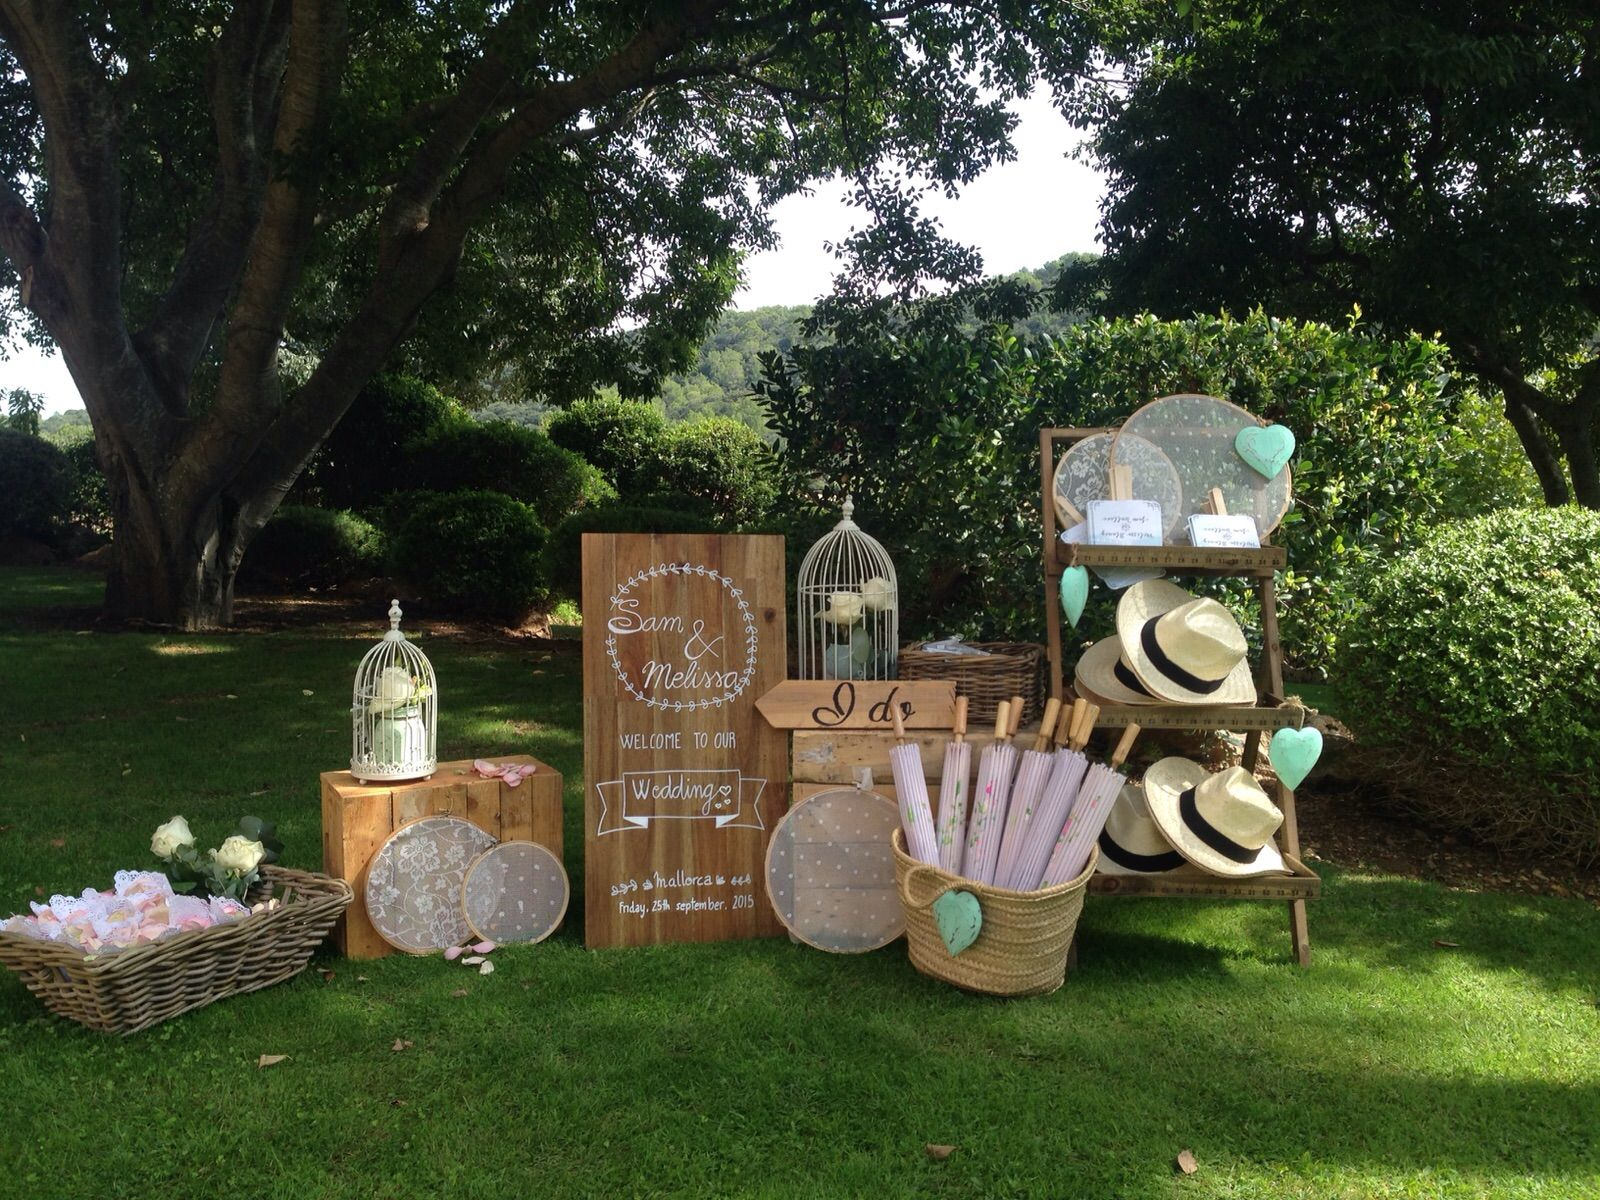 Yard wedding decoration ideas  Wedding ideas  Destination wedding Mallorca  Fun wedding